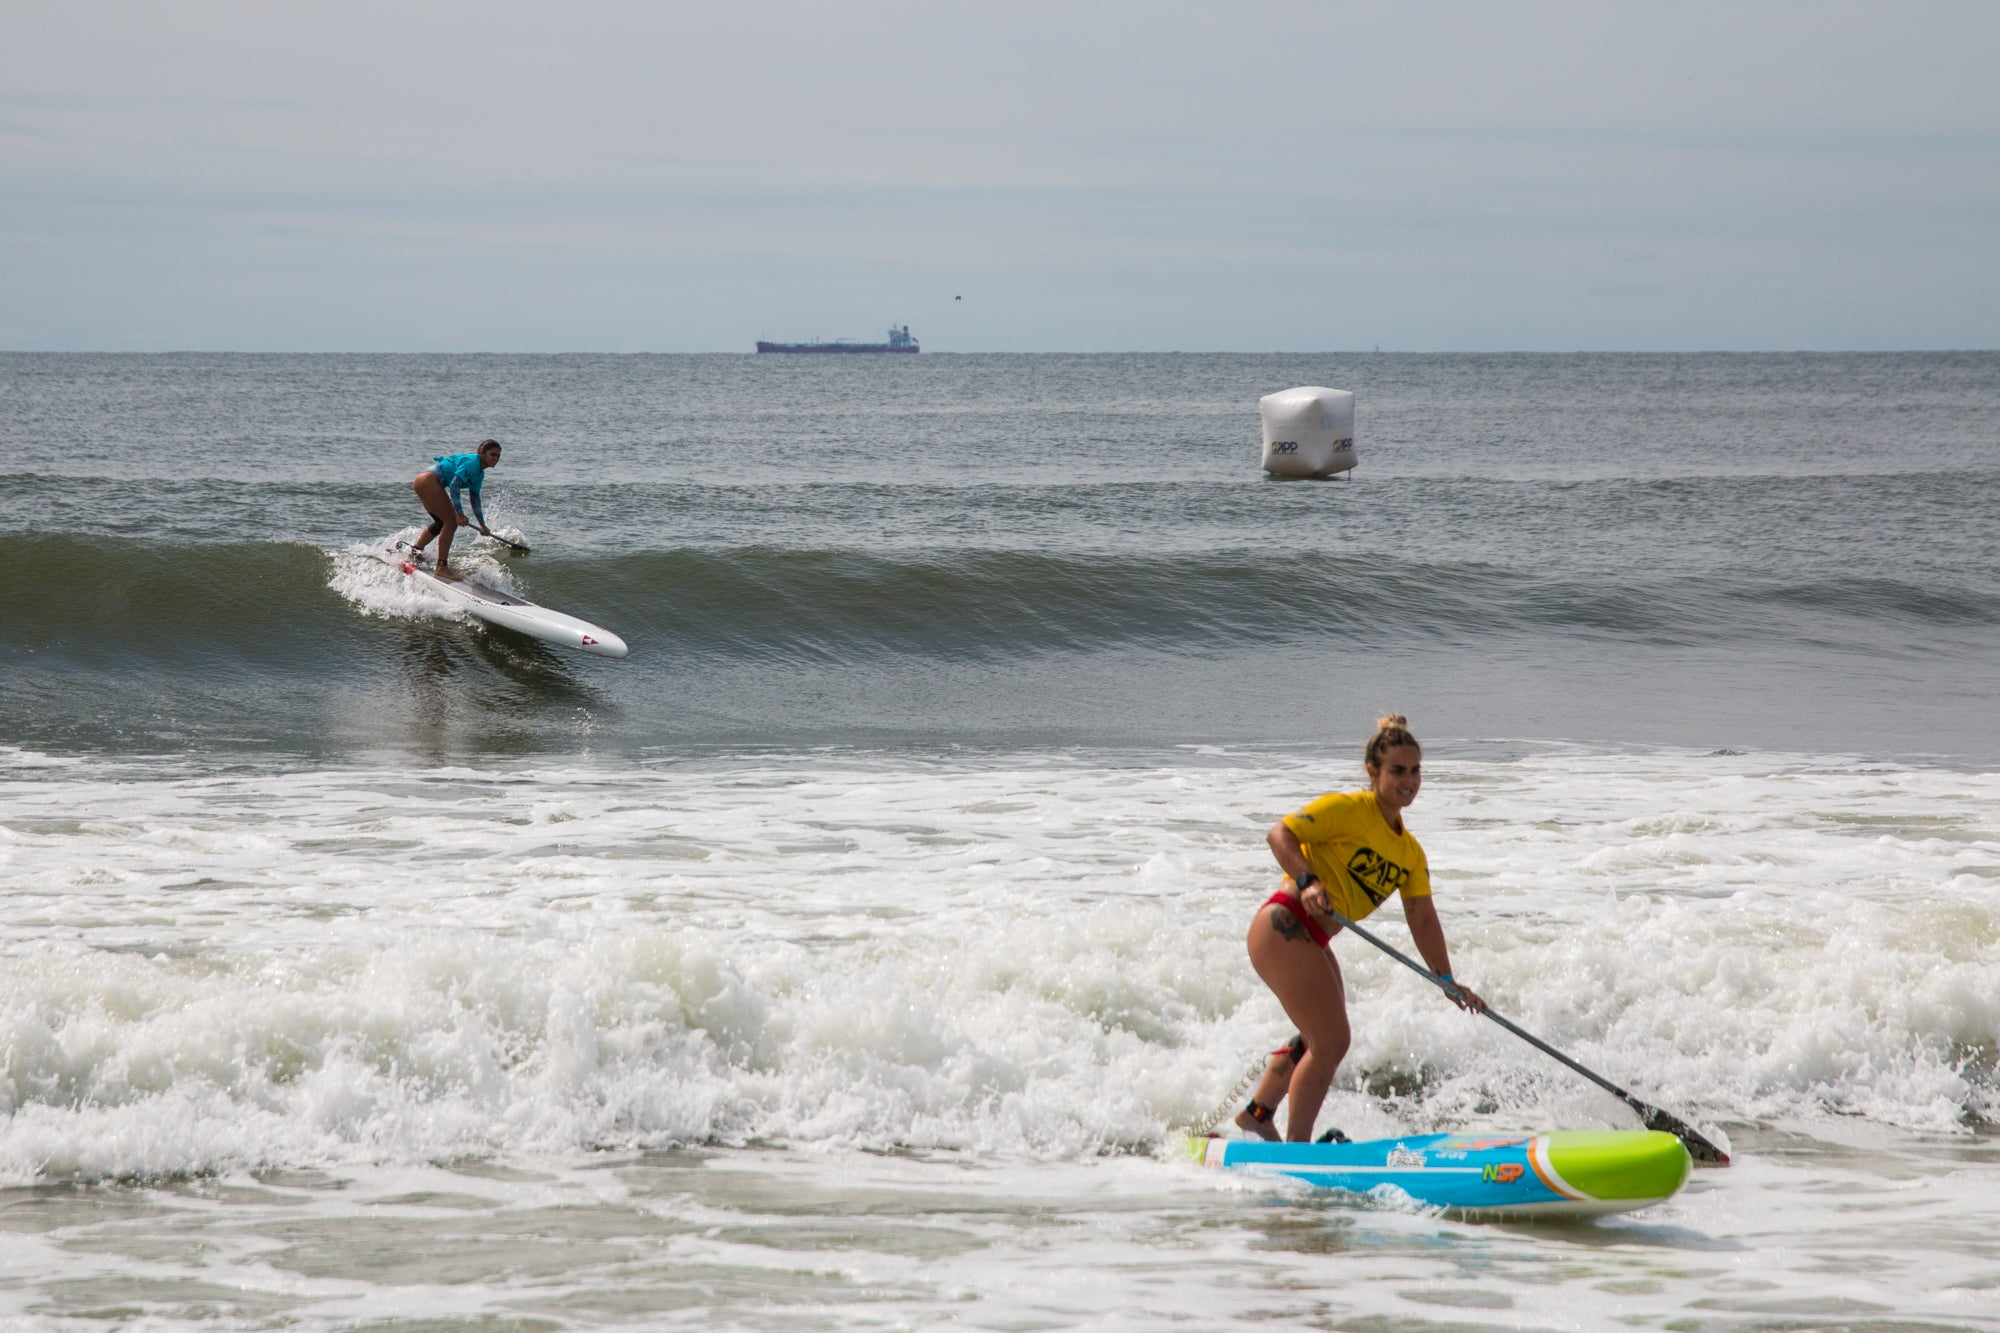 Women's SUP sprint racing at NY Open 2019 APP World Tour